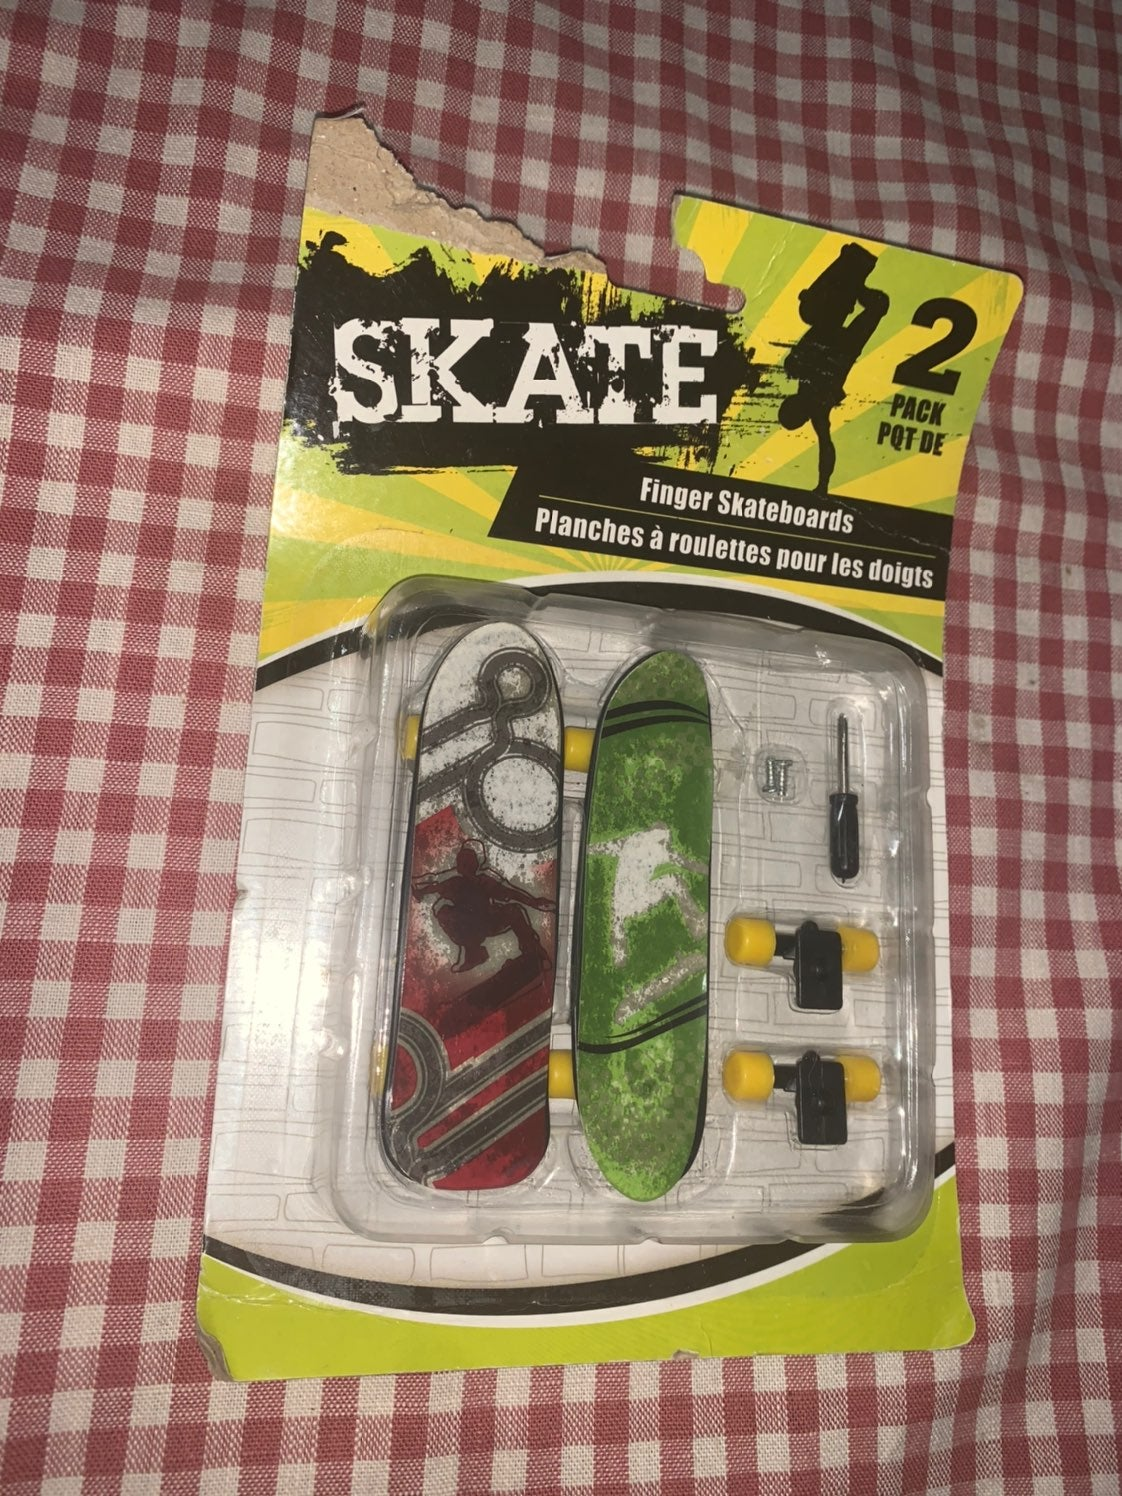 Skate Finger Skateboard 2 Pack New